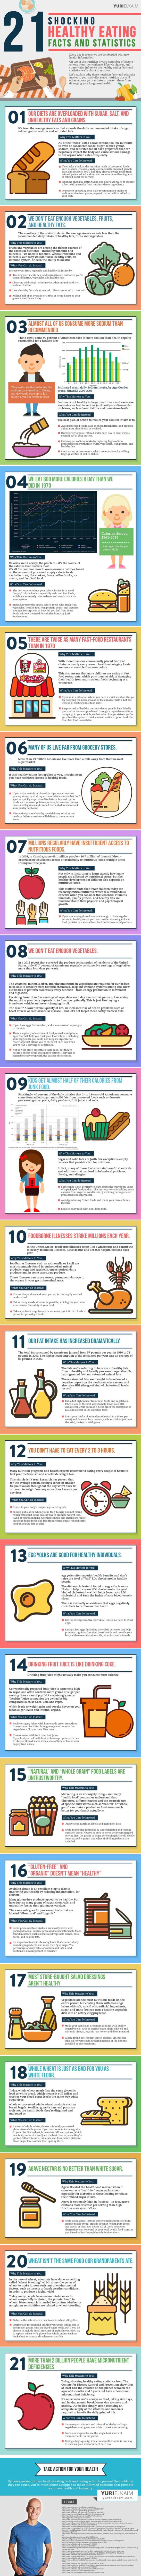 21 Healthy Eating Facts and Statistics Infographic